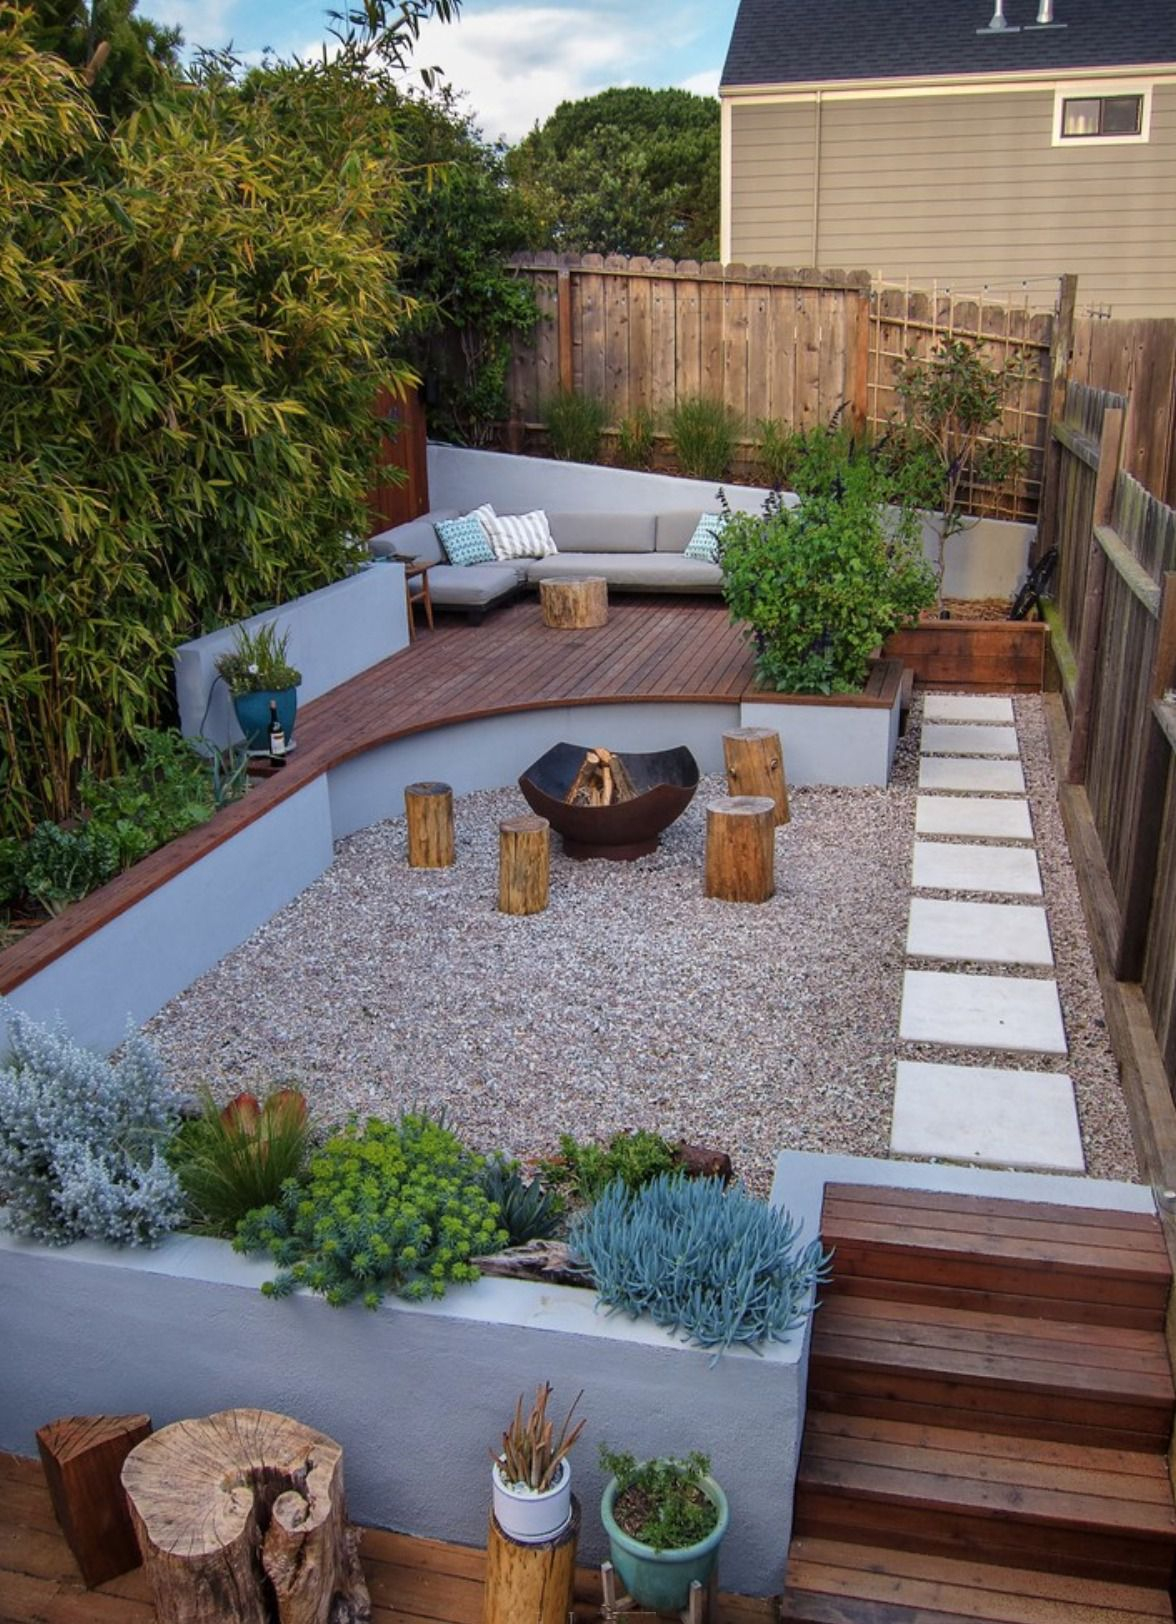 50 Backyard Landscaping Ideas To Inspire You within 15 Smart Tricks of How to Upgrade Terraced Backyard Landscaping Ideas